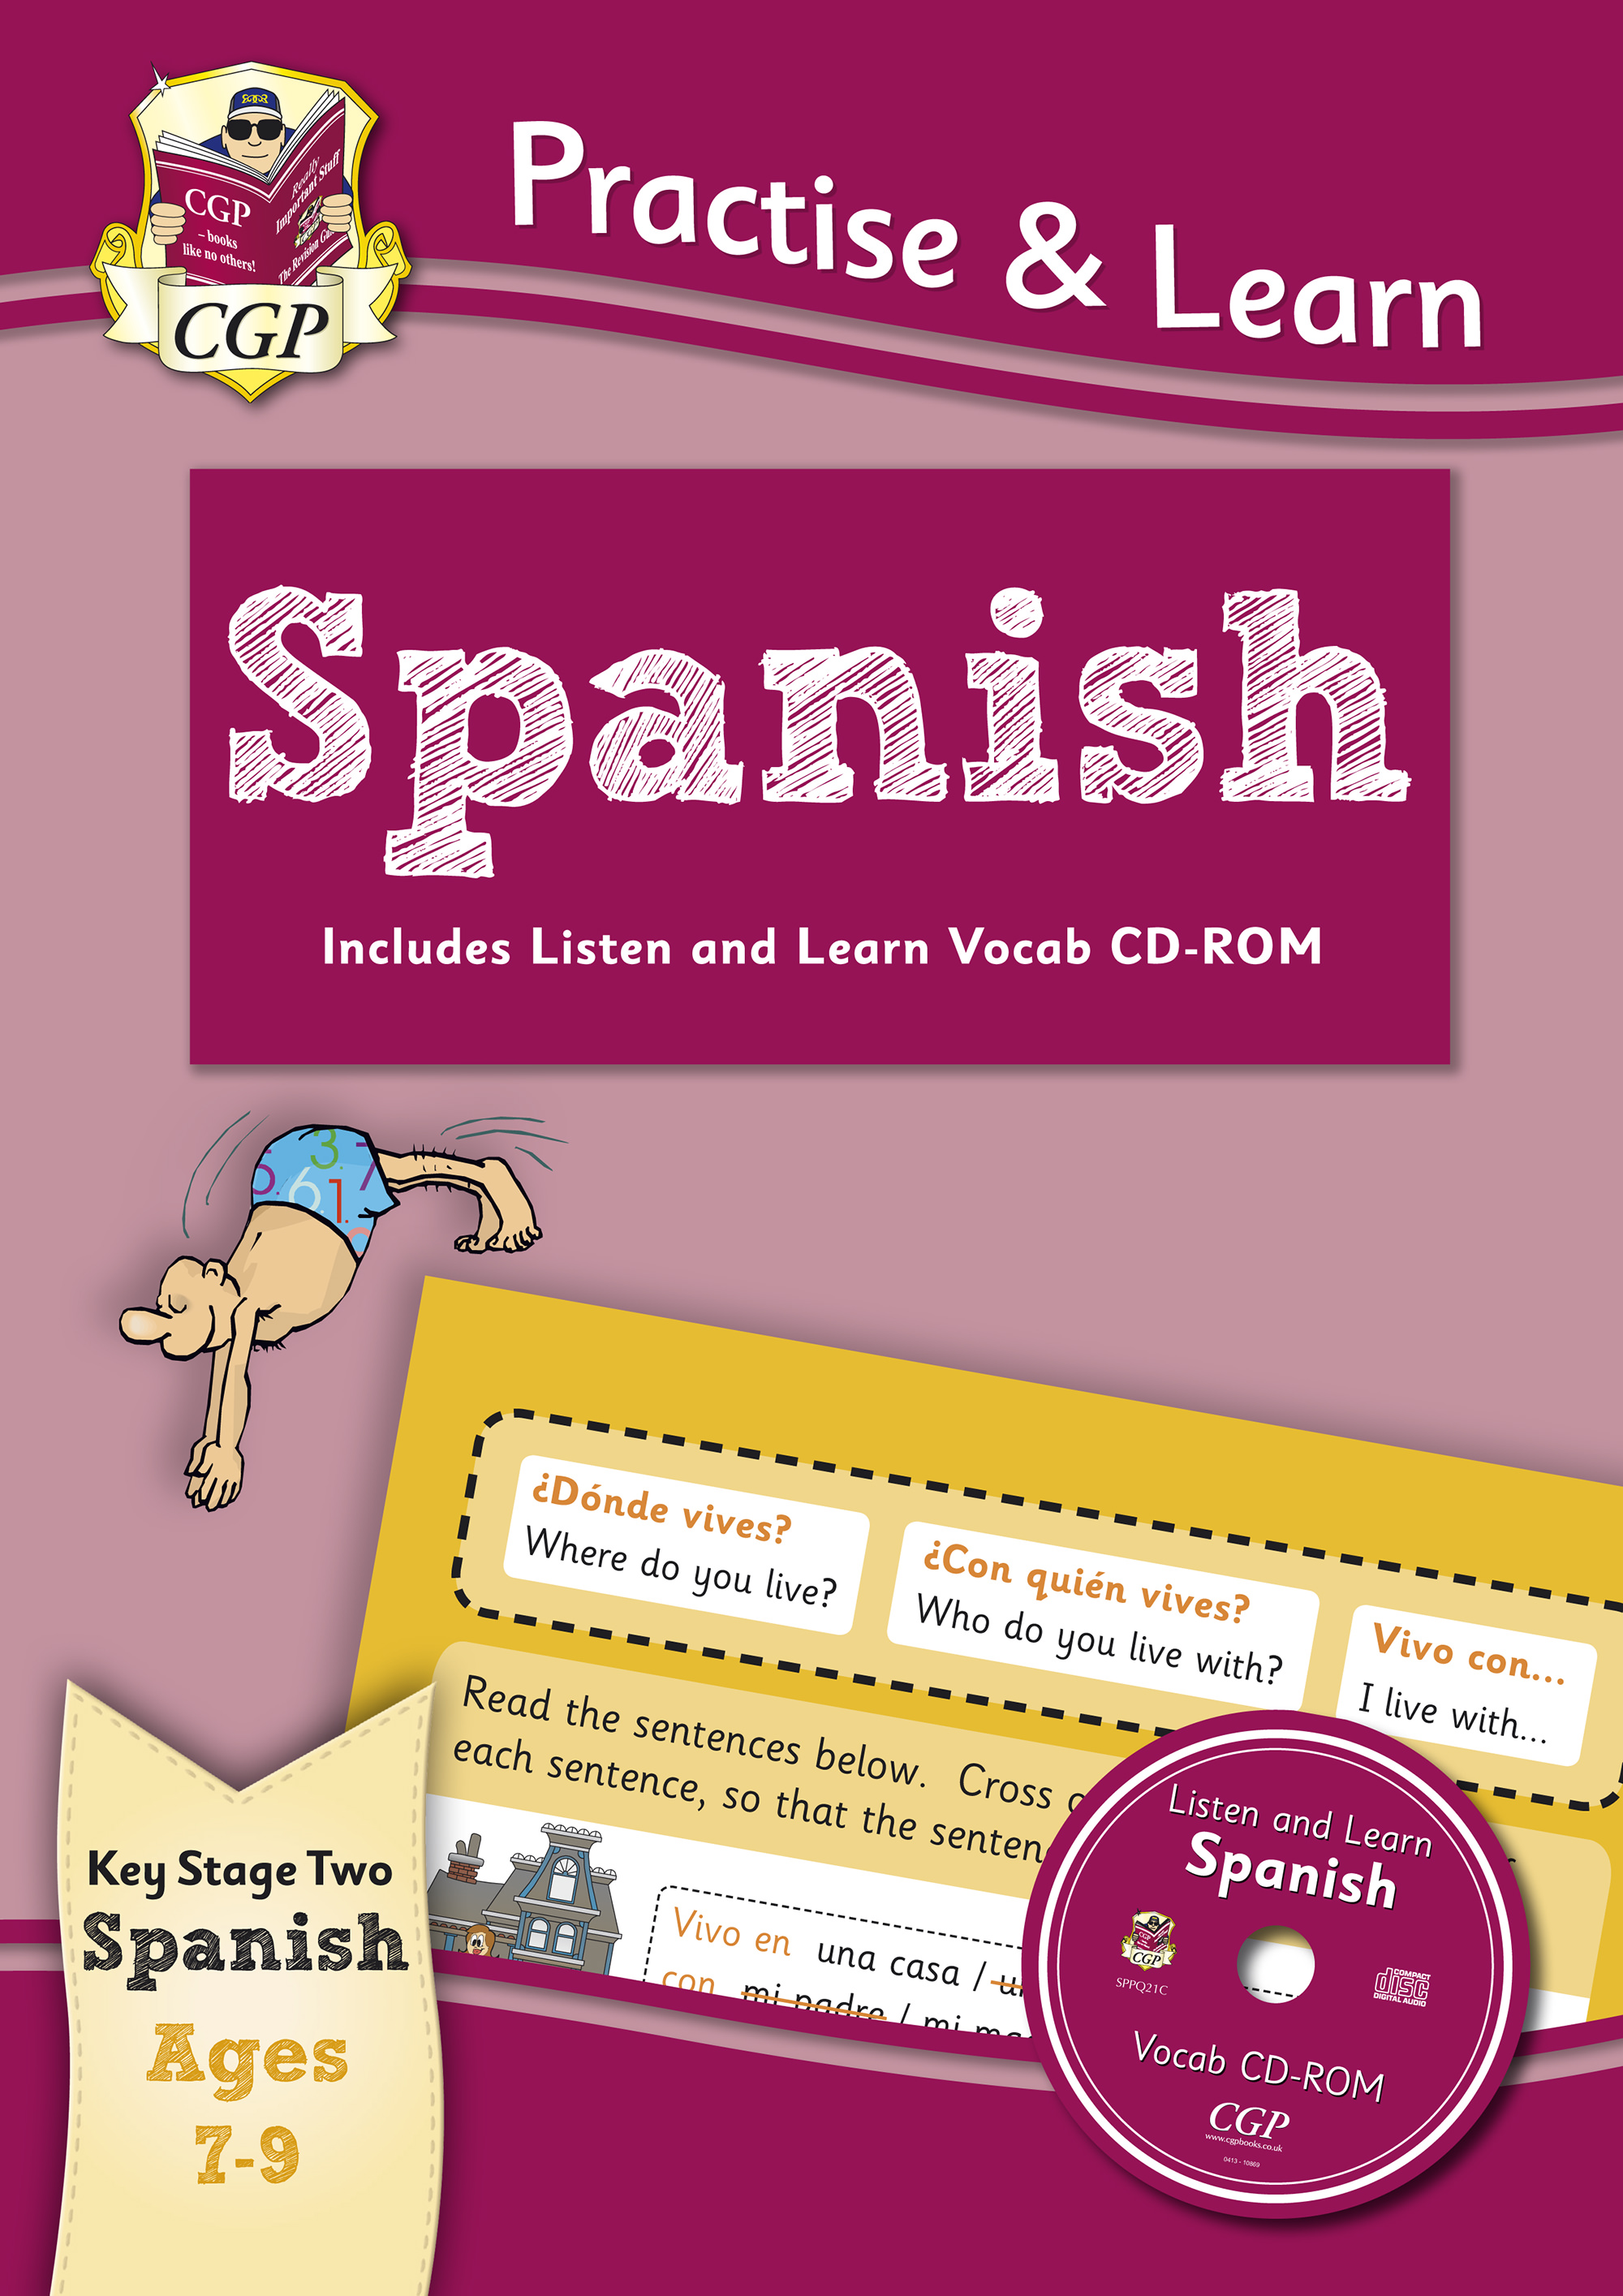 SPP4Q22 - Practise & Learn: Spanish for Ages 7-9 - with vocab CD-ROM